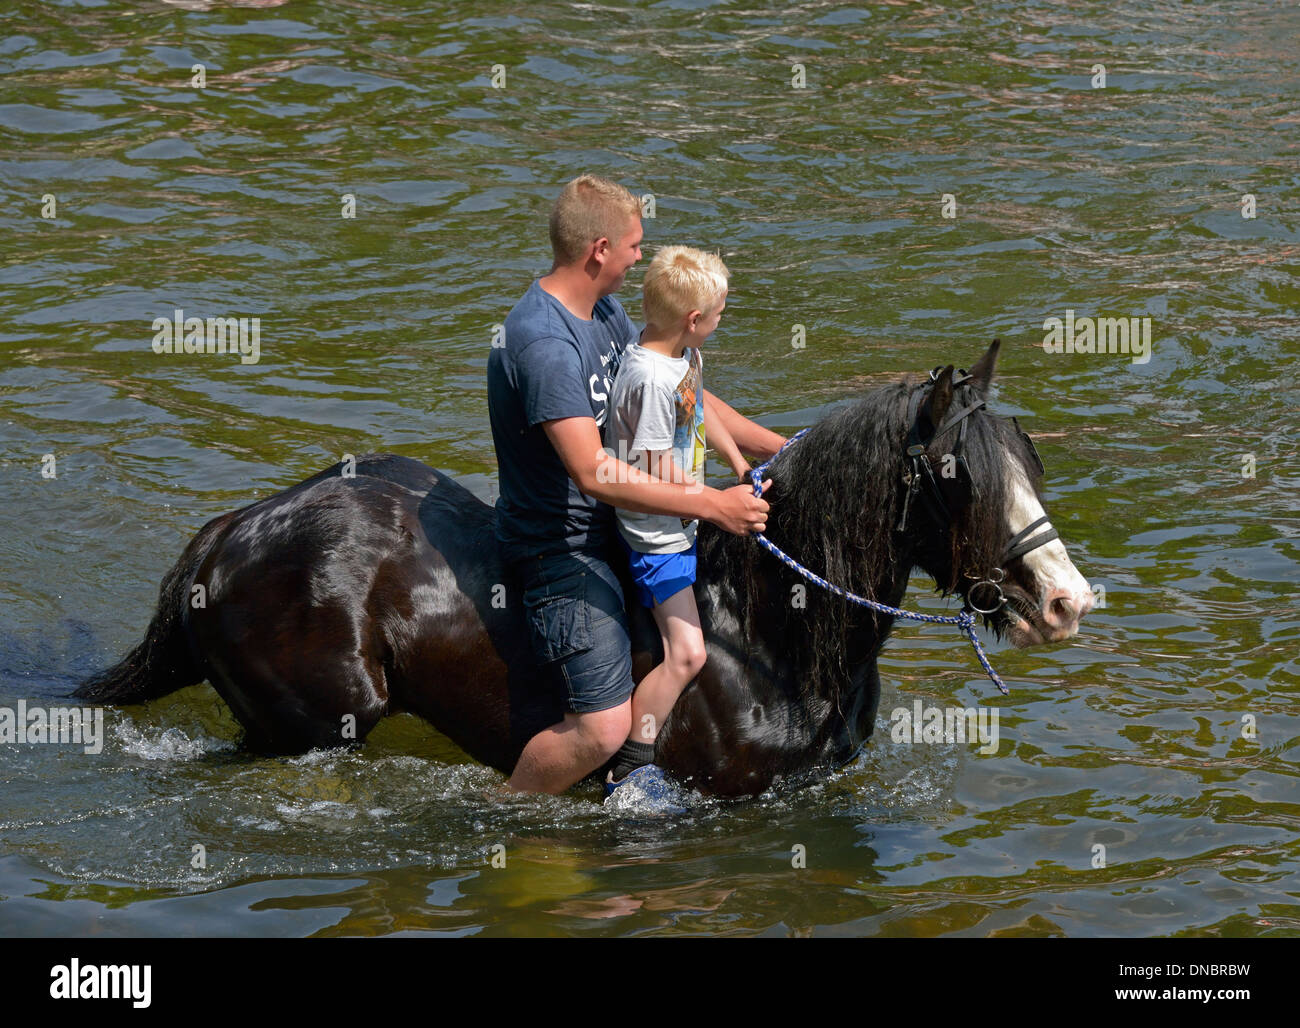 Gypsy travellers riding horse in River Eden. Appleby Horse Fair, Appleby-in-Westmorland, Cumbria, England, United Kingdom. - Stock Image